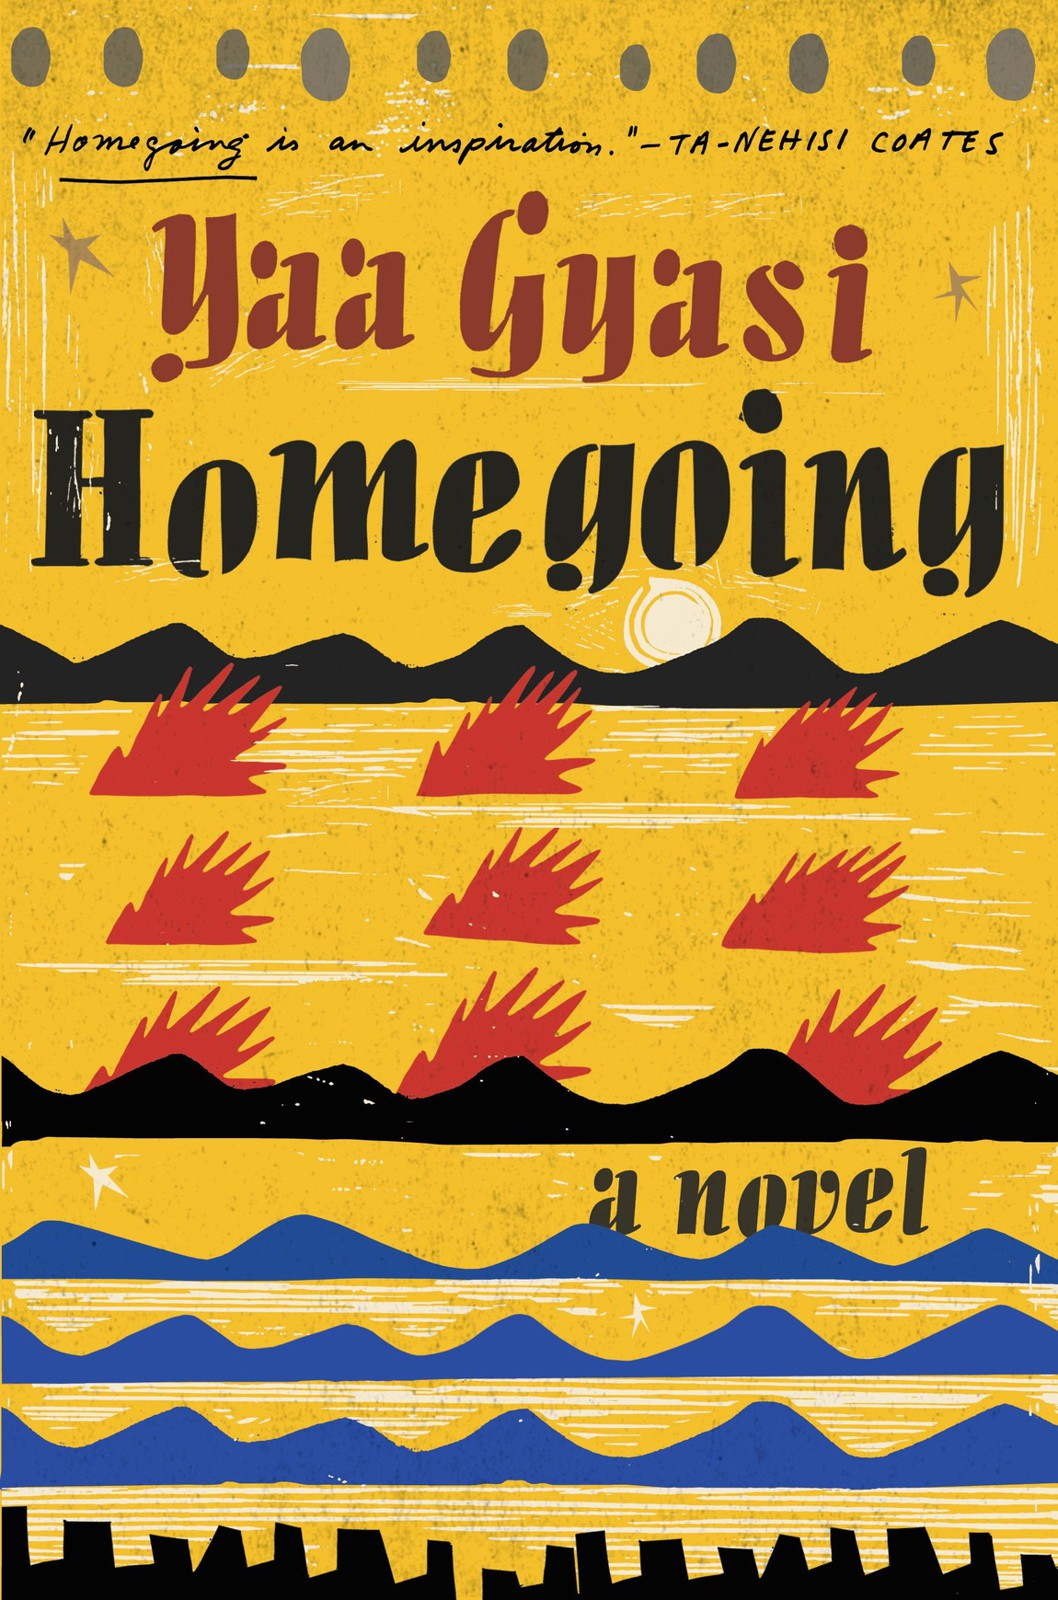 the issue of identity in homegoing a historical fiction novel by yaa gyasi Buy homegoing (random house large print) large print by yaa gyasi (isbn: 9780735208193) from amazon's book store everyday low prices and free delivery on eligible orders.